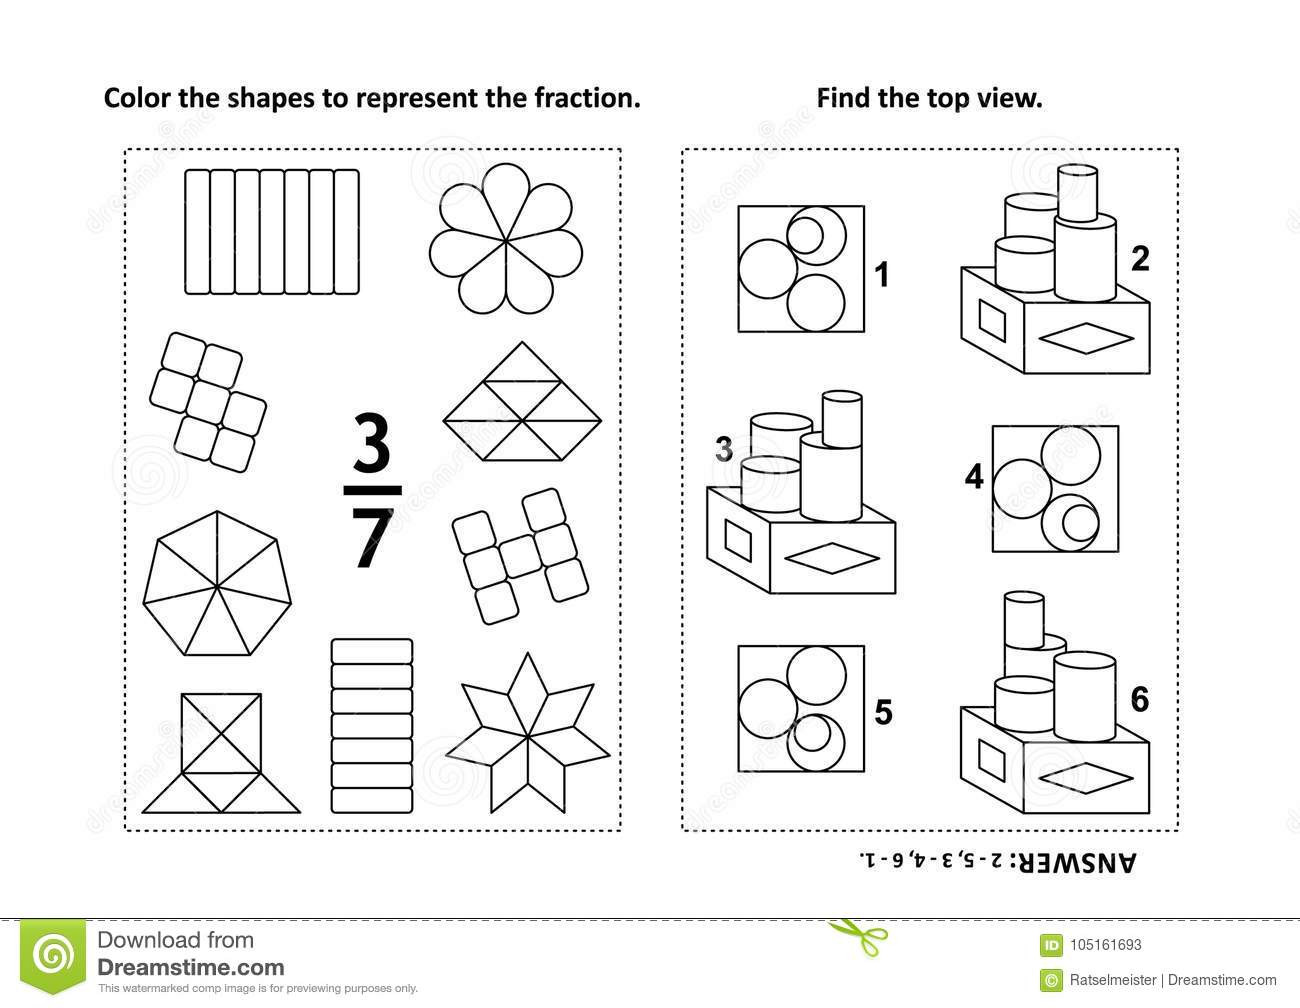 Fraction Coloring Worksheets 5th Grade Fraction Coloring Worksheets Educational Math Activity Page